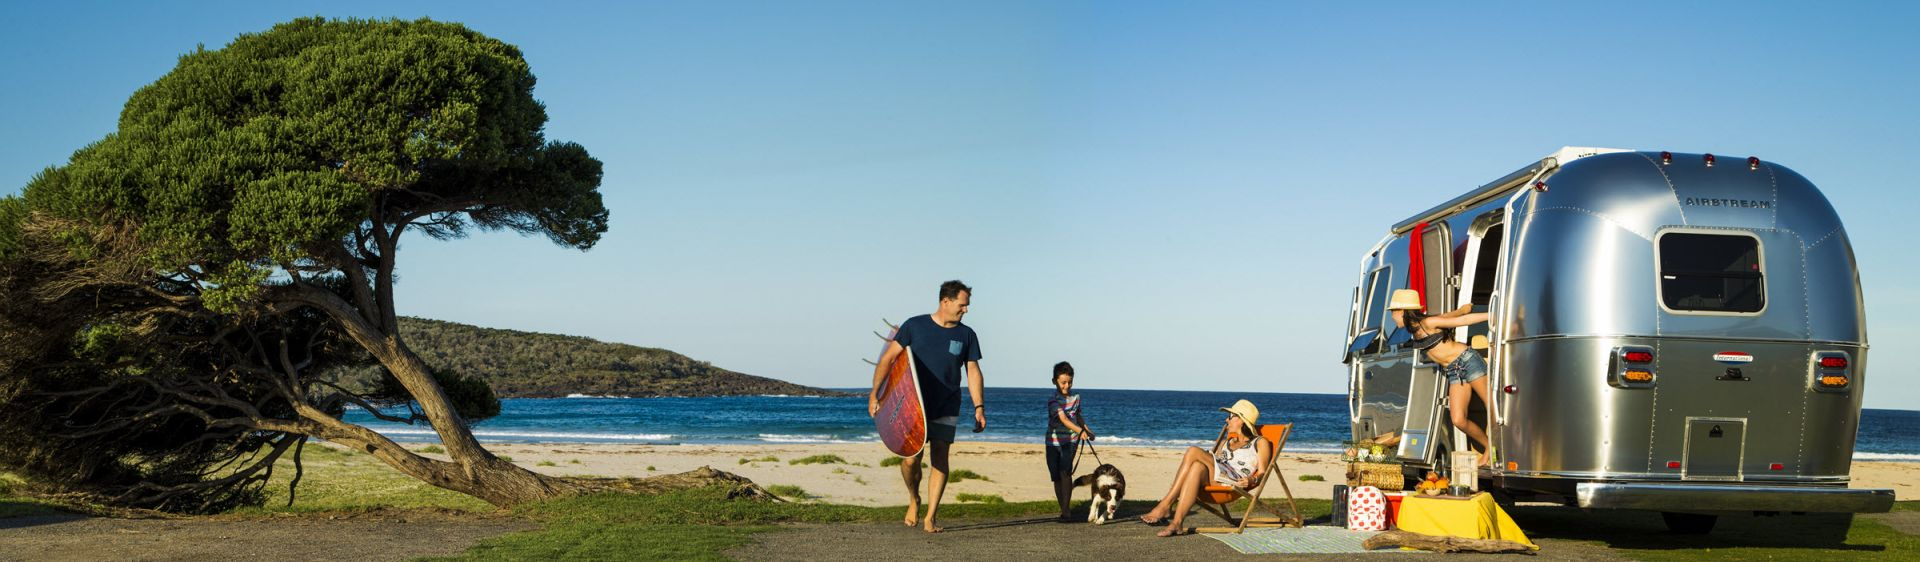 A family caravanning at Merry Beach in Kioloa, South Coast